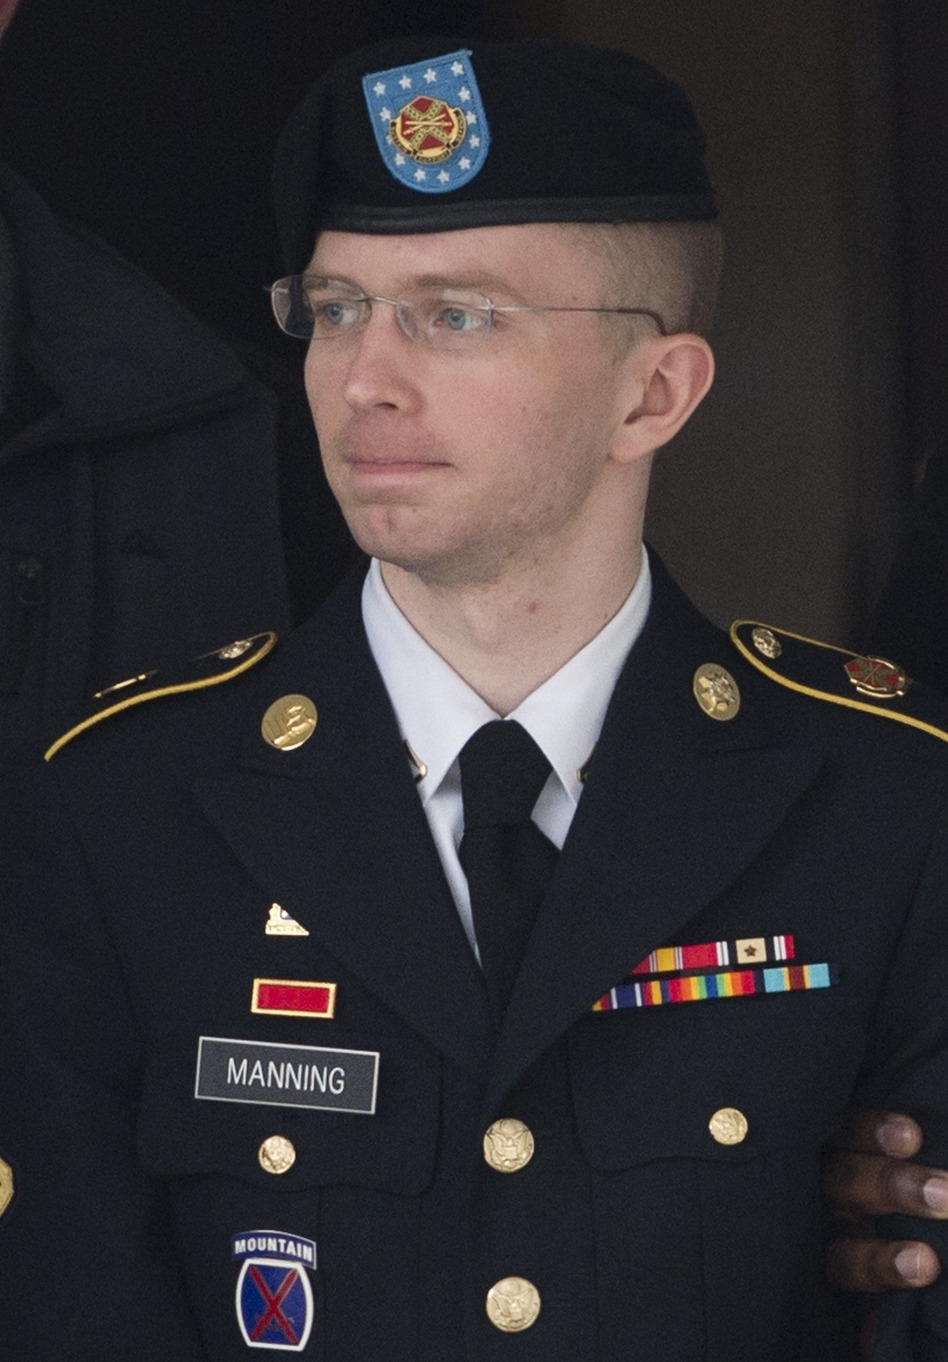 U.S. Army Pfc. Bradley Manning at Fort Meade, Md., on Tuesday. (Saul Loeb /AFP/Getty Images)